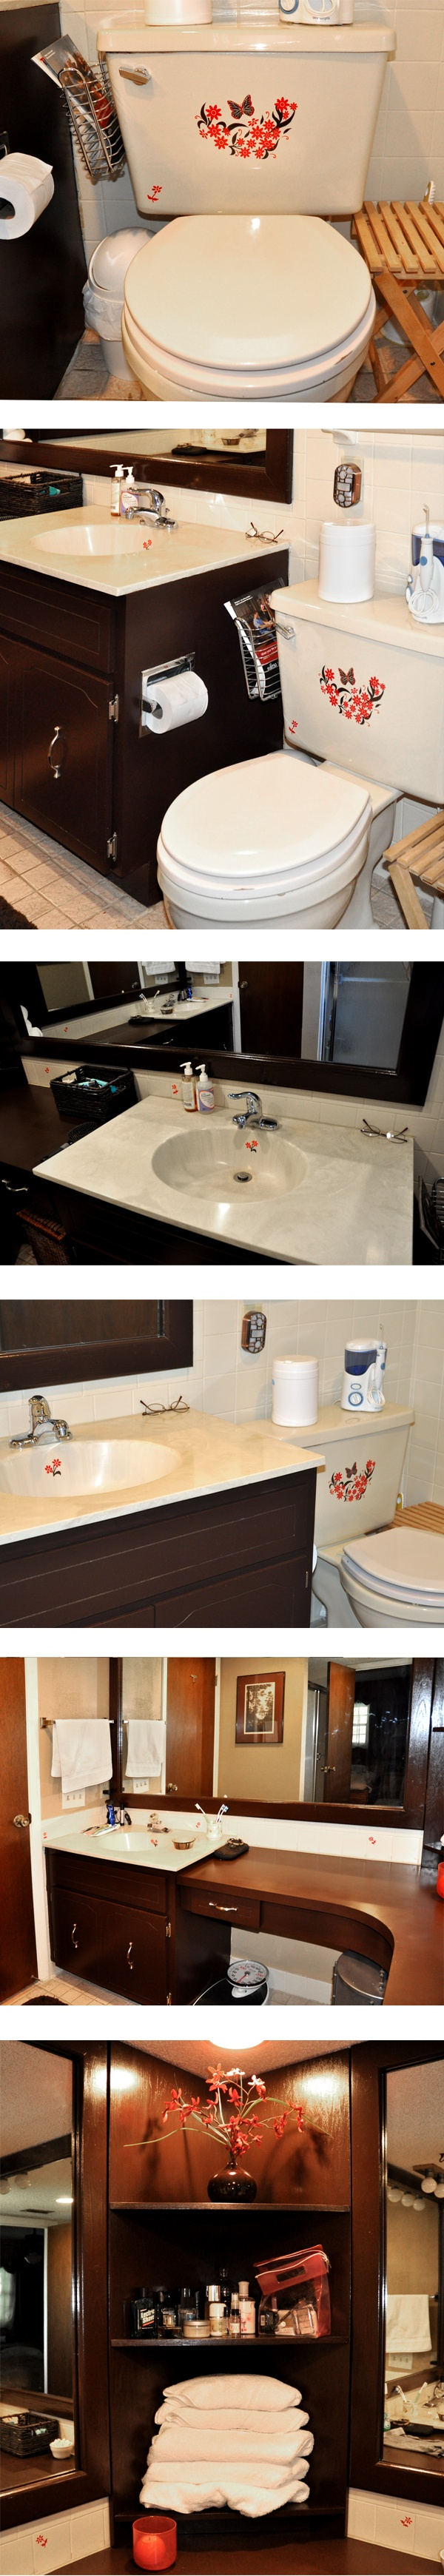 We used Sinkadoodles decals to add some red accent coloring to our brown bathroom with some